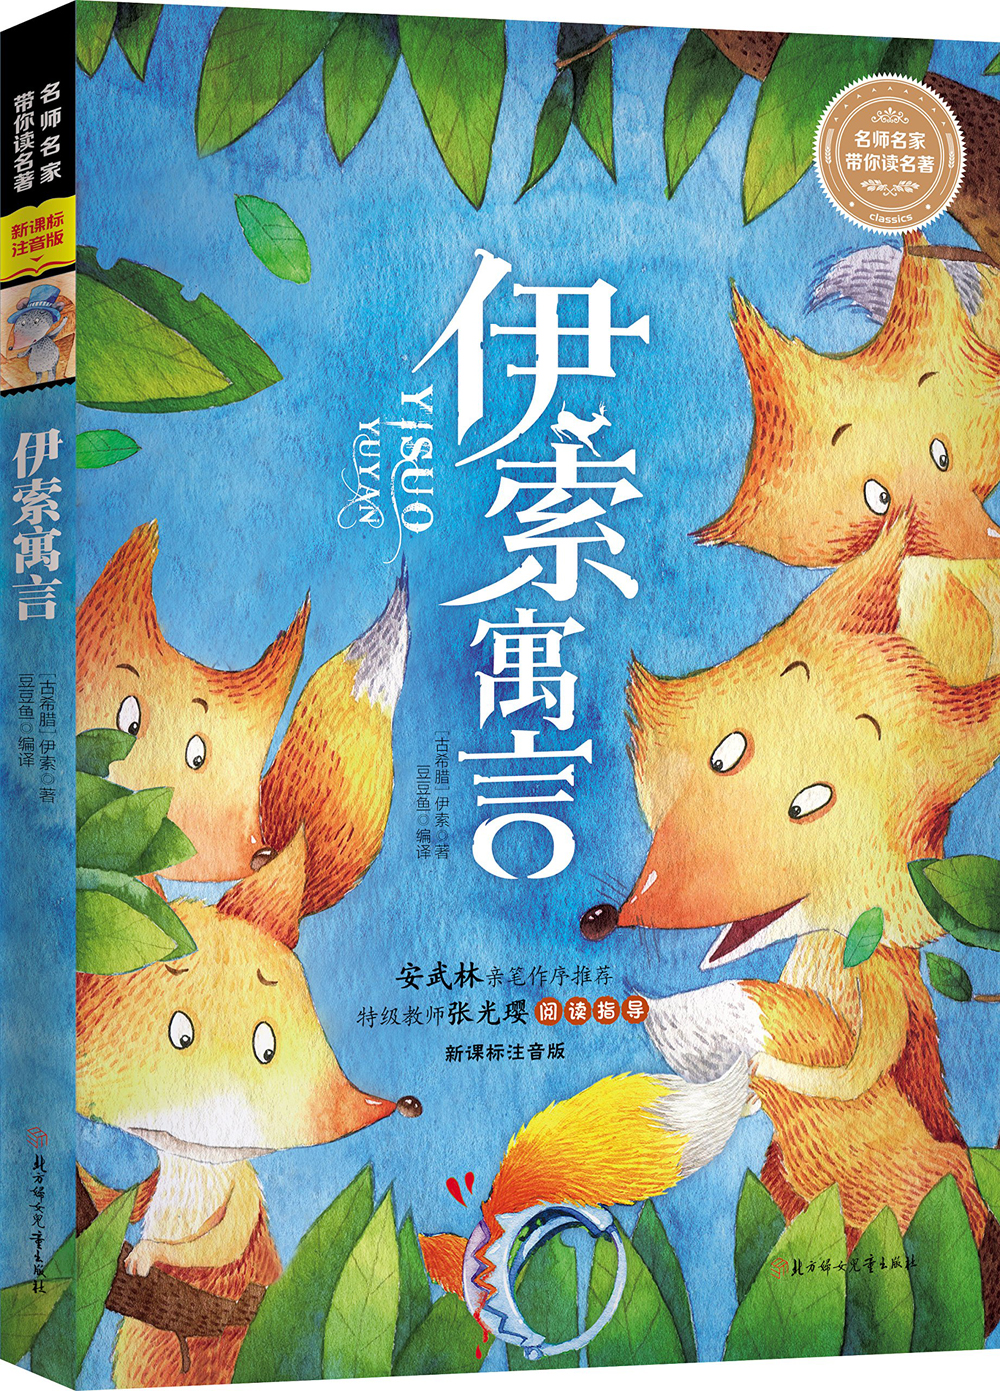 Children Andersen's Fairy Tales Book In Chinese For Kids Children Age 2-10, Chinese Short Story Book